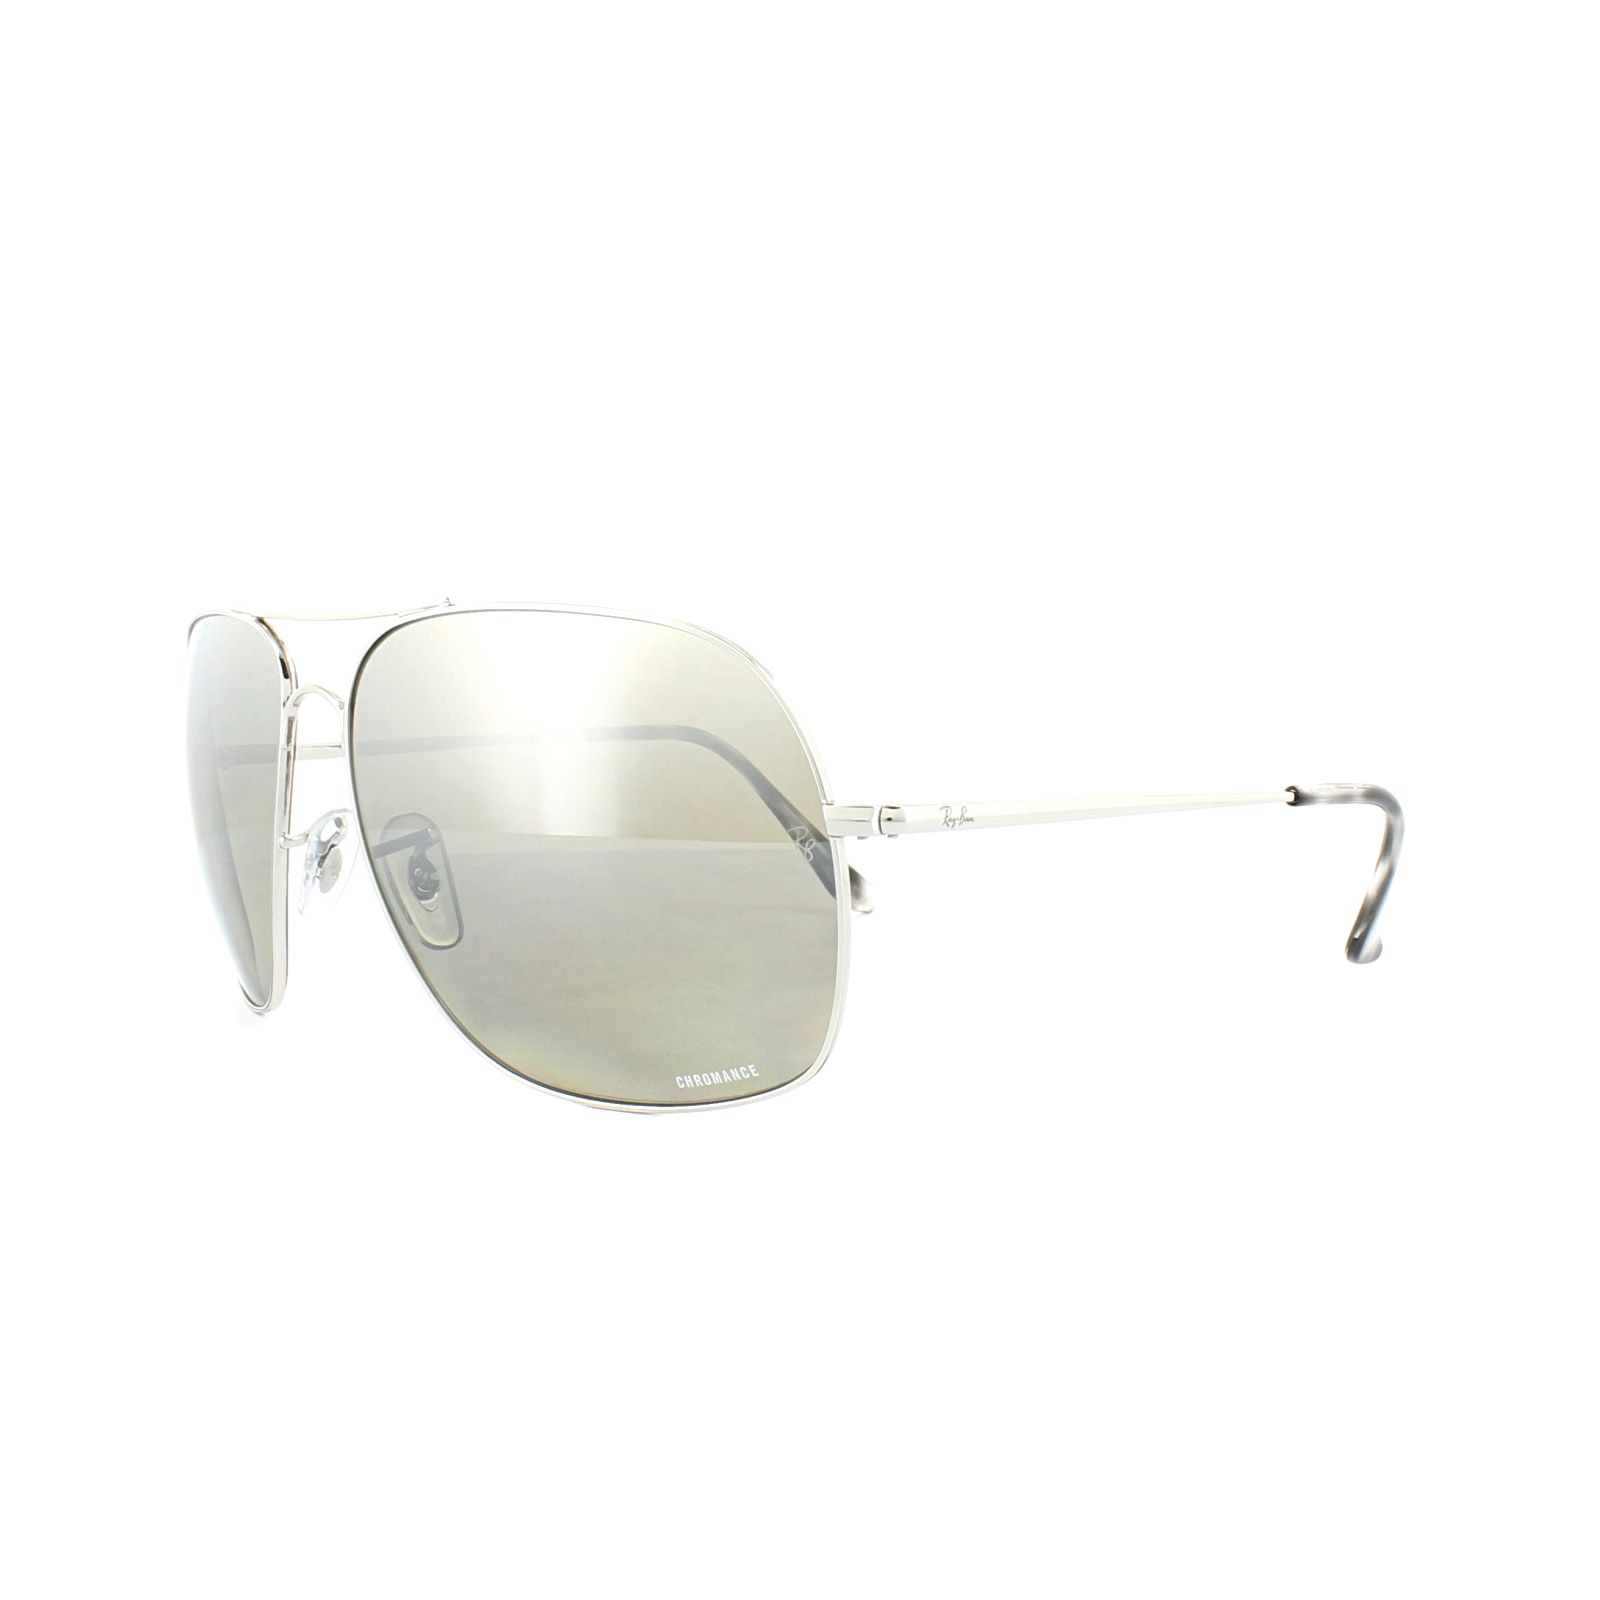 65e59fe320 Details about Ray-Ban Sunglasses 3587CH 003 5J Silver Polarized Silver  Mirror Chromance